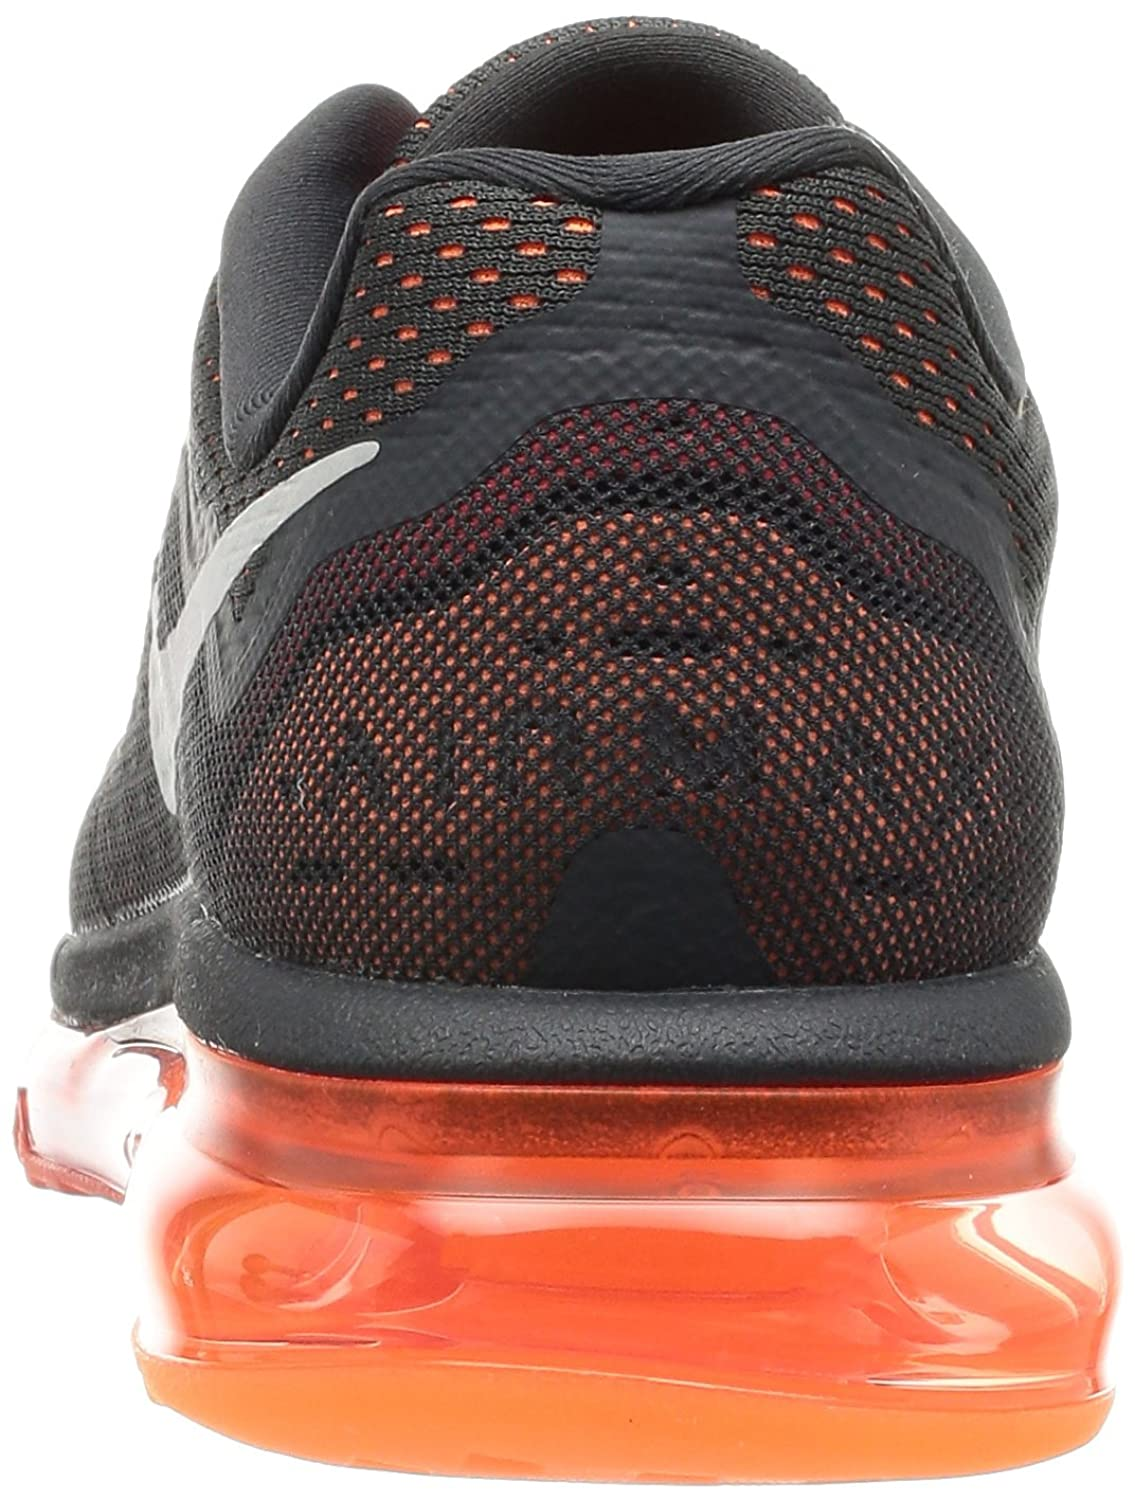 Amazon.com | Nike Men\u0027s Air Max 2014 Running Shoes, Anthracite/Light Crimson -Atomic Orange, 10 | Road Running